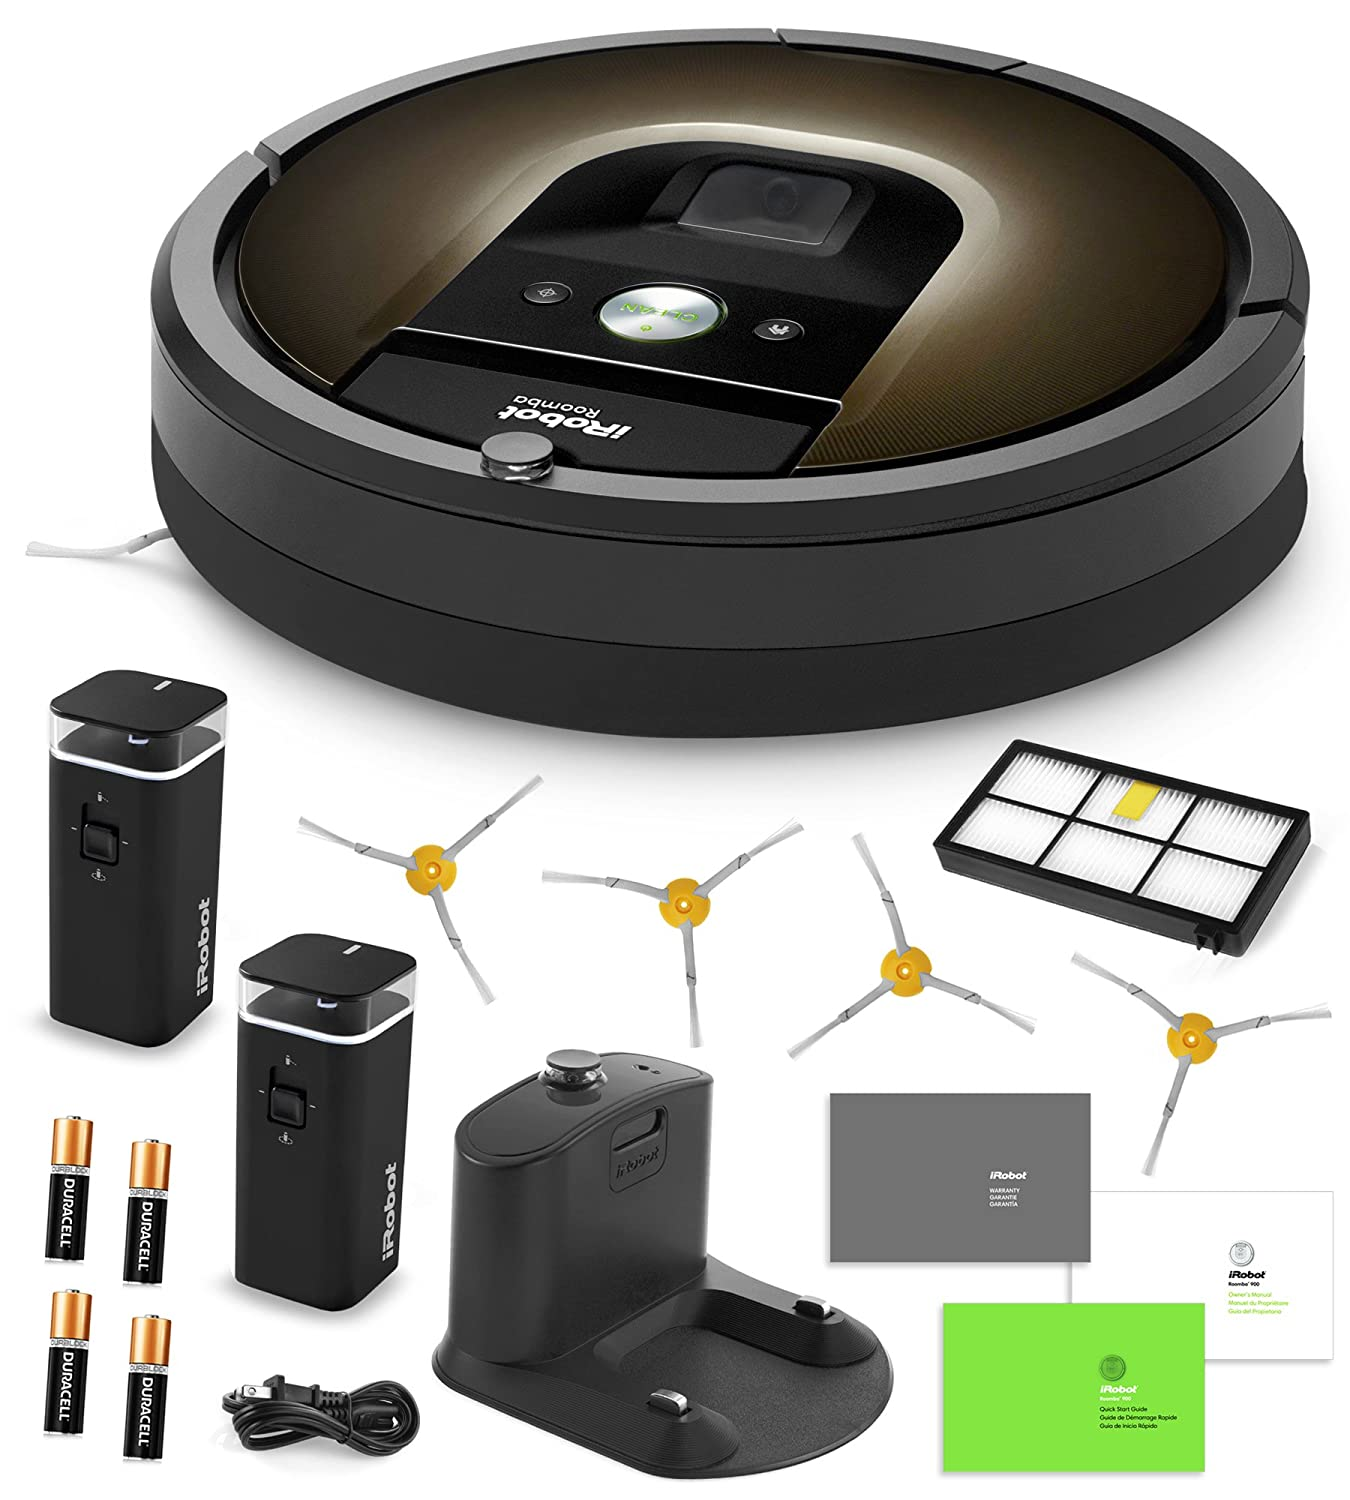 iRobot Roomba 980 Vacuum Cleaning Robot + 2 Dual Mode Virtual Wall Barriers (With Batteries) + 4 Extra Side Brushes + Extra HEPA Filter + More